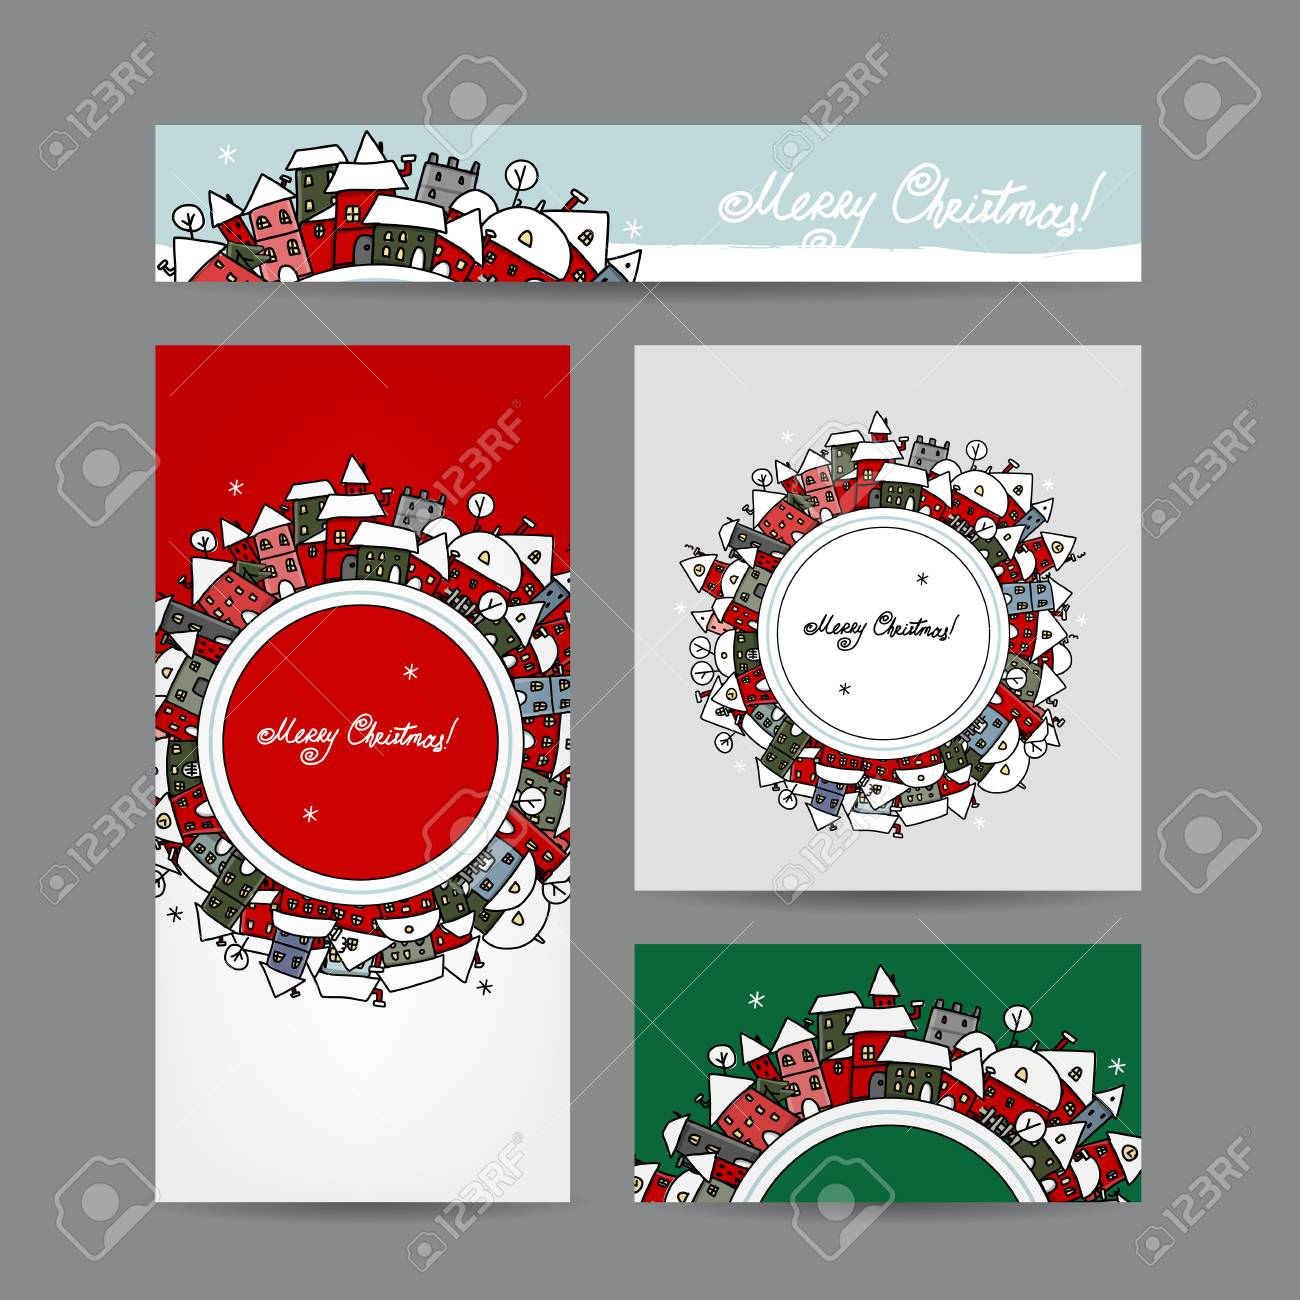 Christmas Cards With Winter City Sketch For Your Design Royalty Free ...